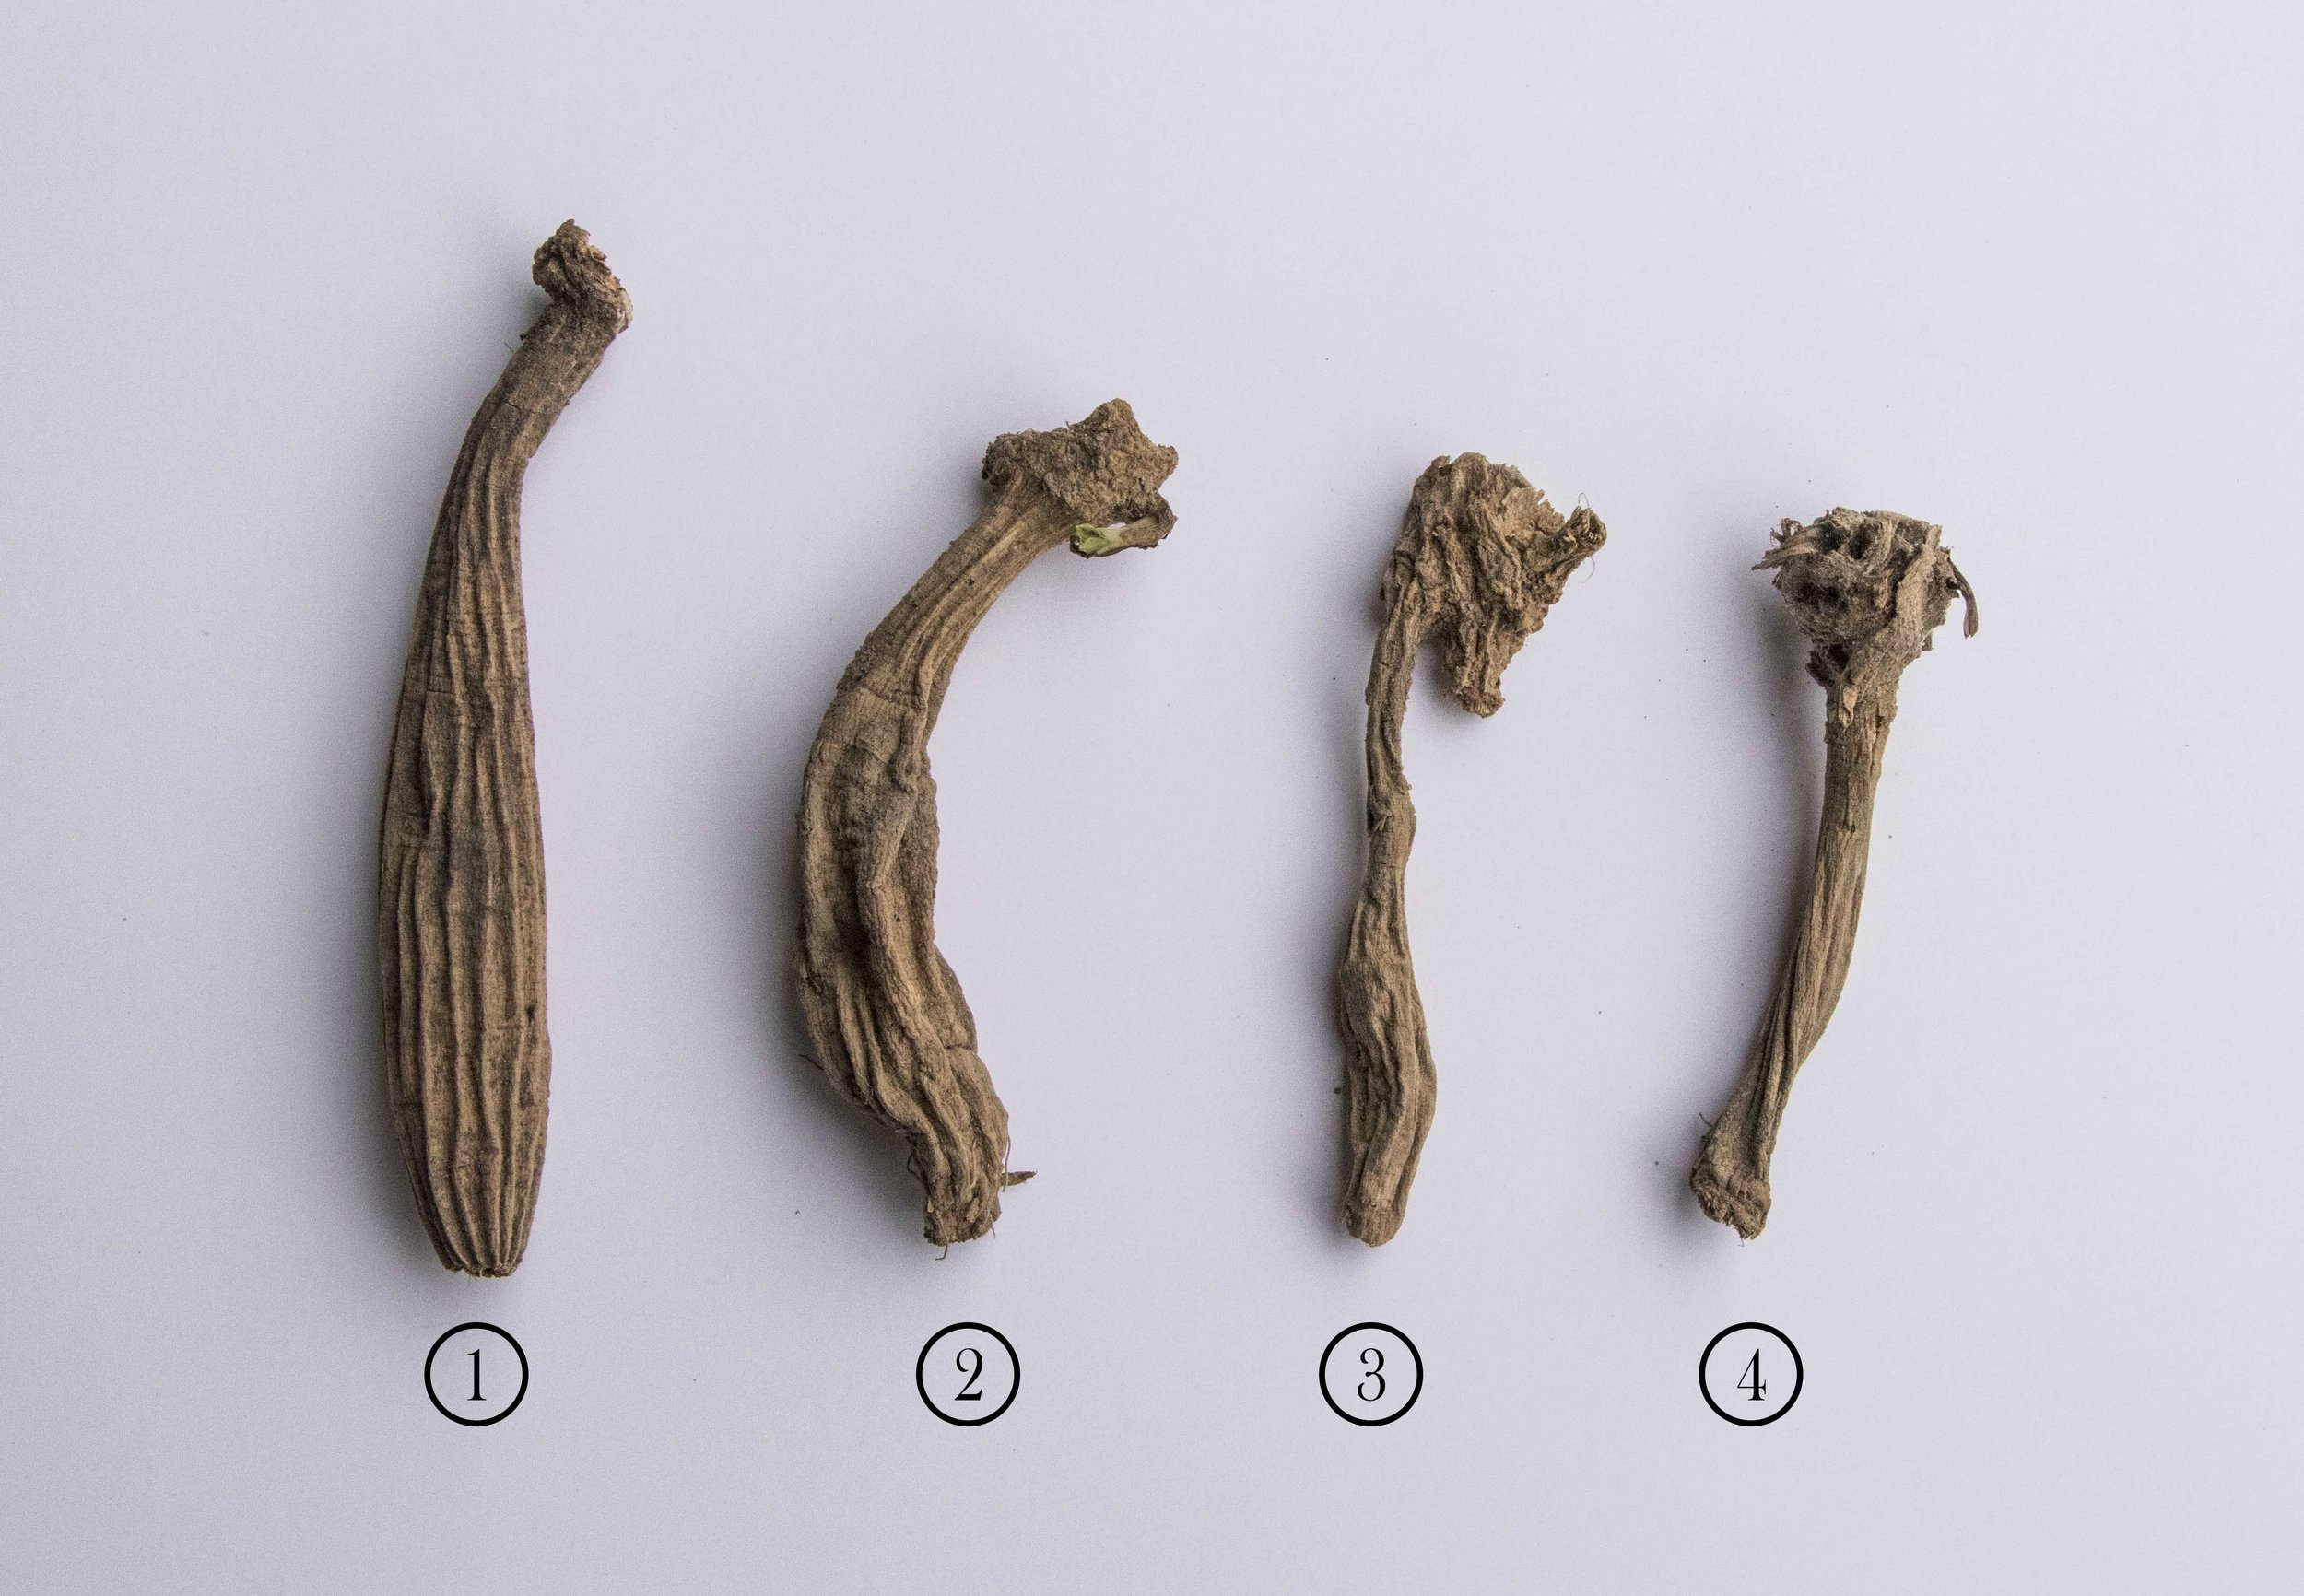 Examples of dried tubers. Look at the next photo too see what they look like inside.